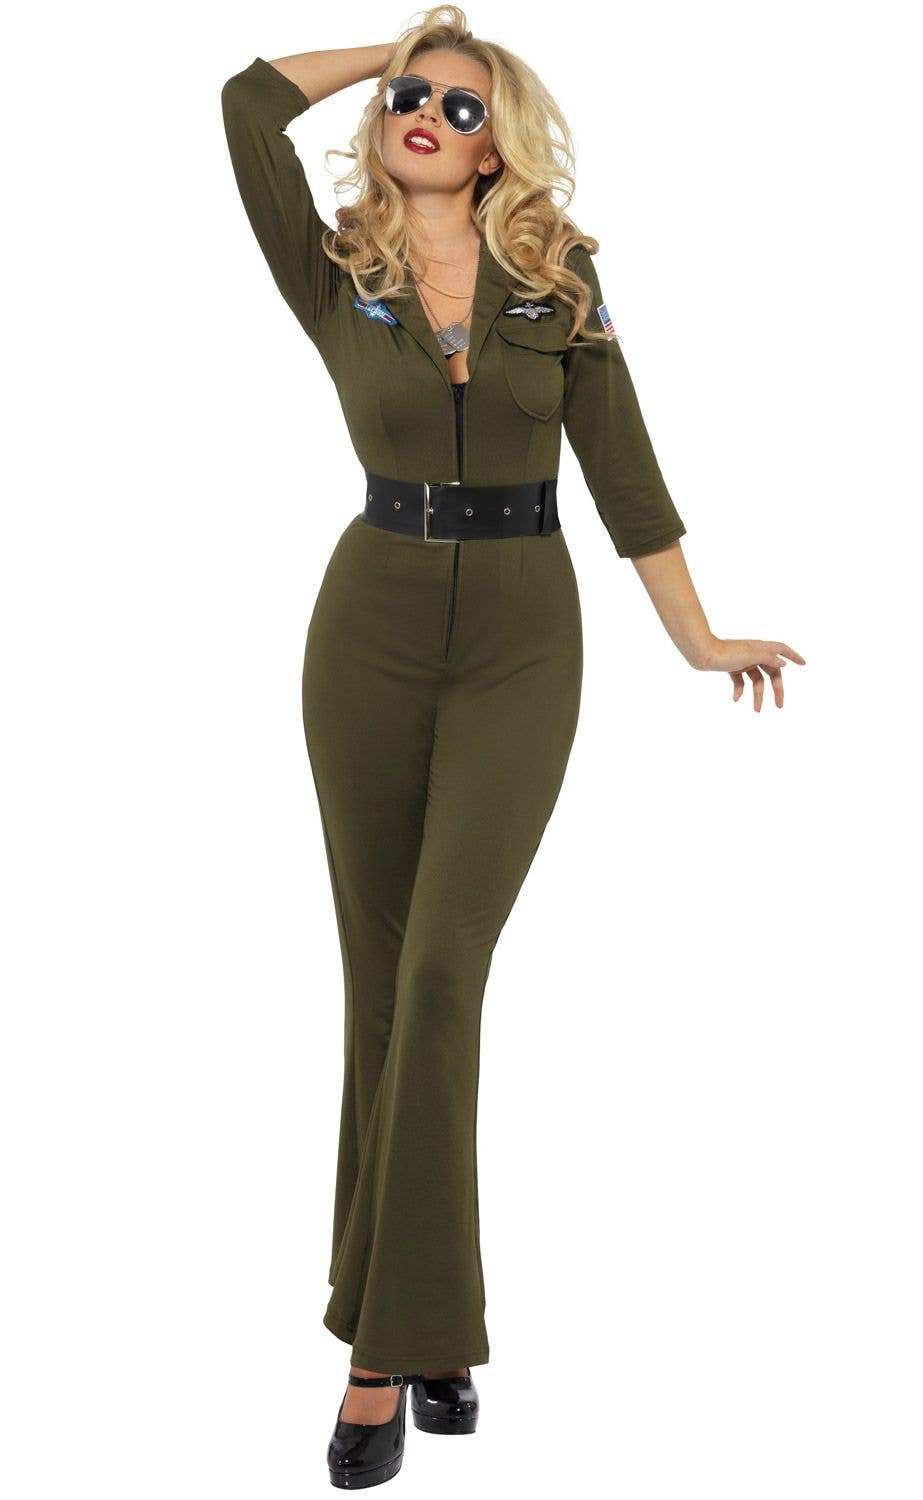 Women s Top Gun Aviator Flightsuit Costume Alt Front View affa03429